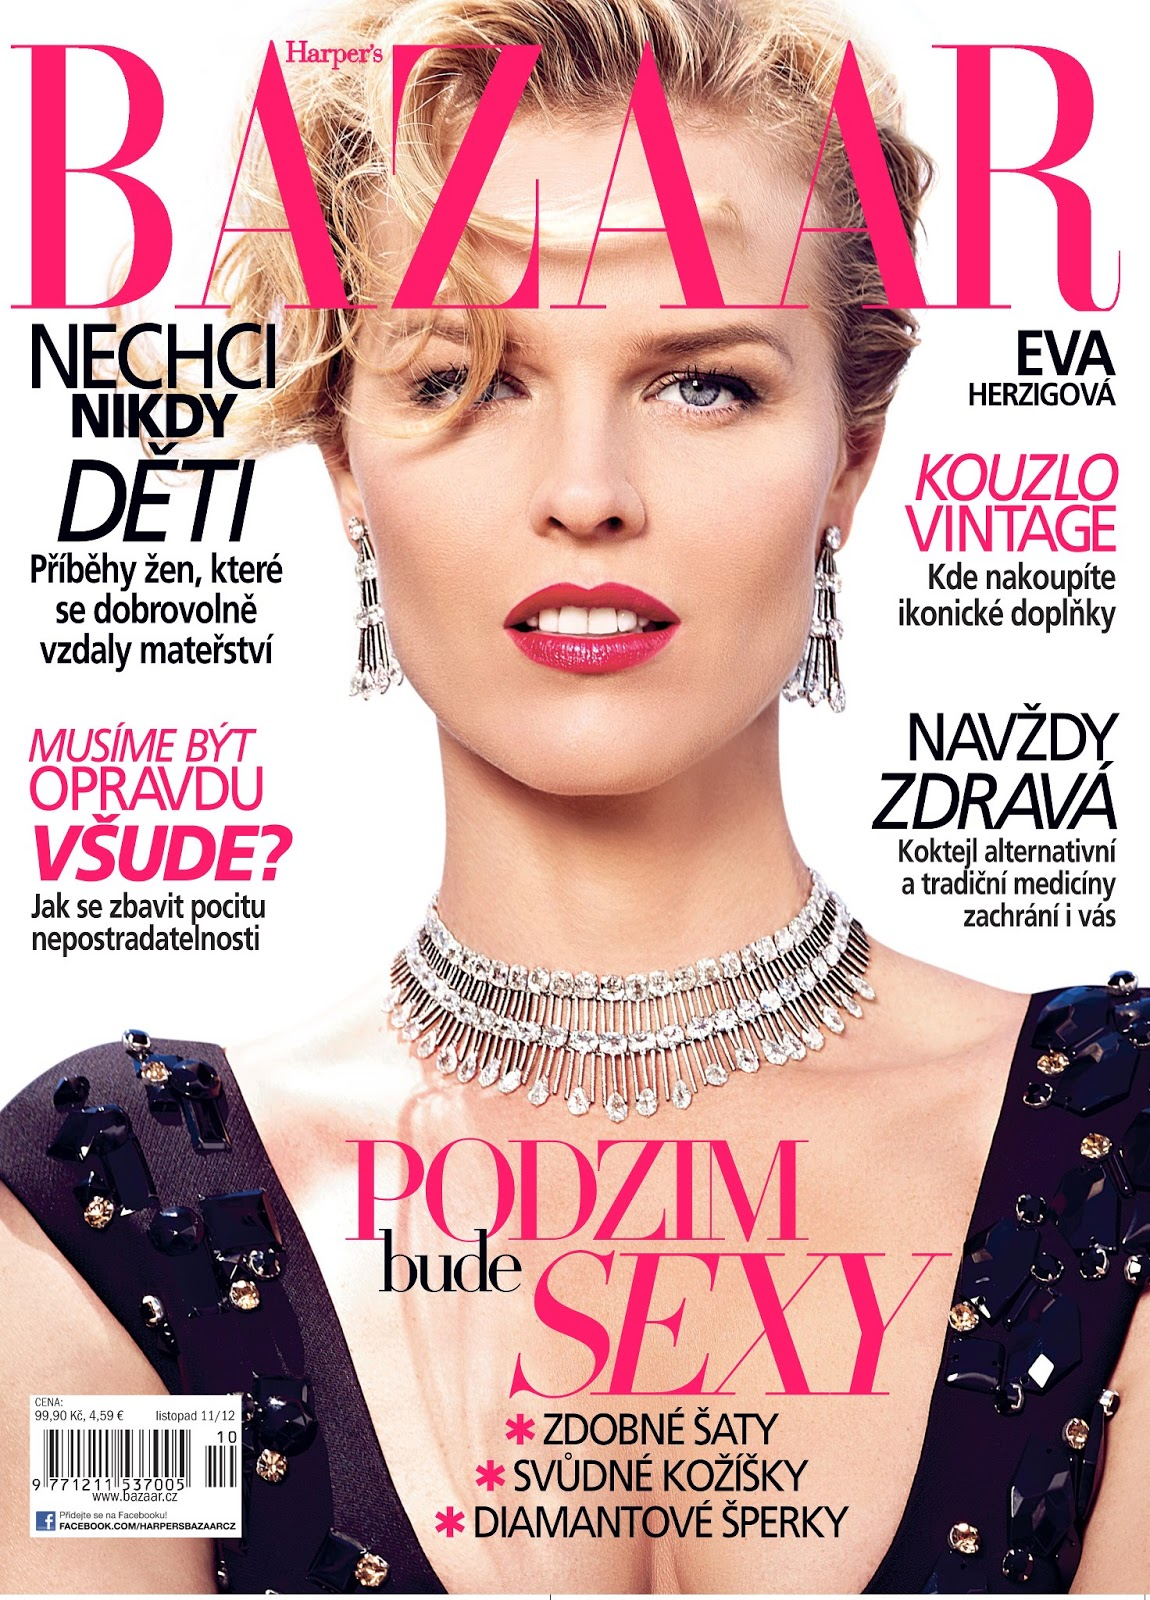 The Beauty of Pregnancy with Eva Herzigova for Harper's Bazaar